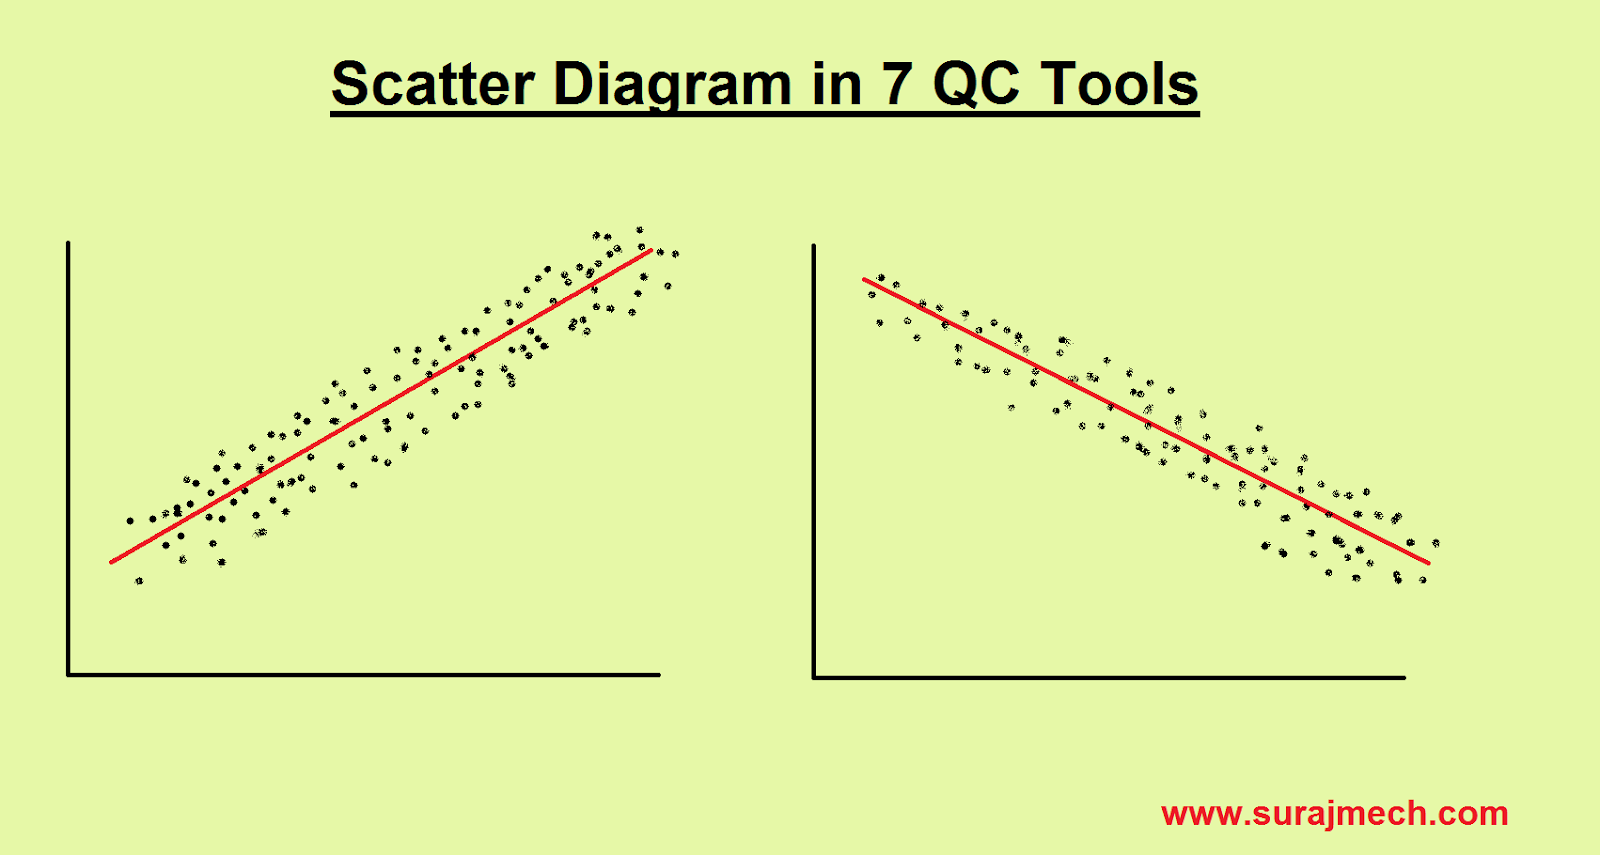 Scatter diagram in 7QC Tools